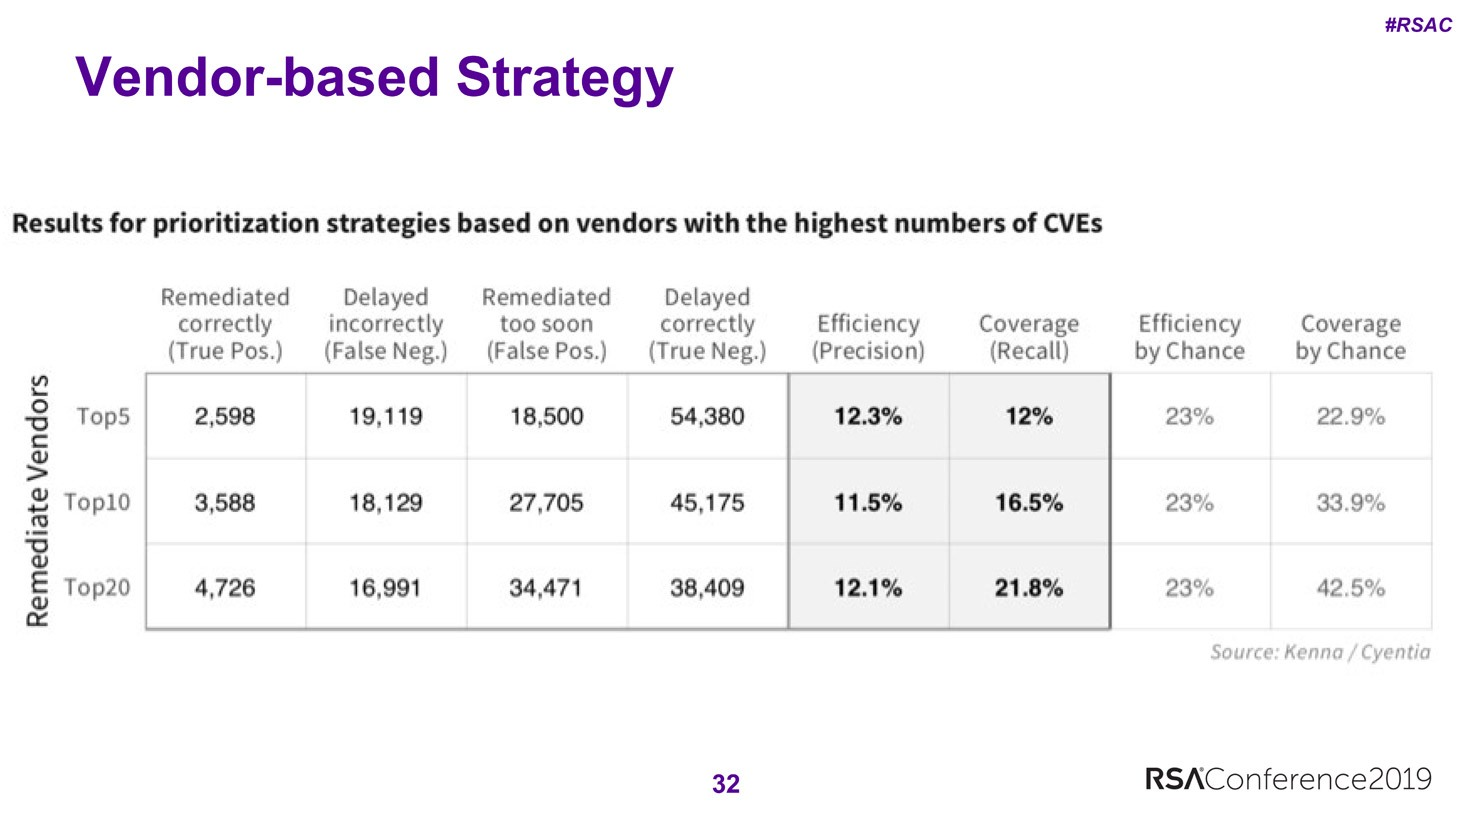 Vendor-based strategies are far less effective than random patching